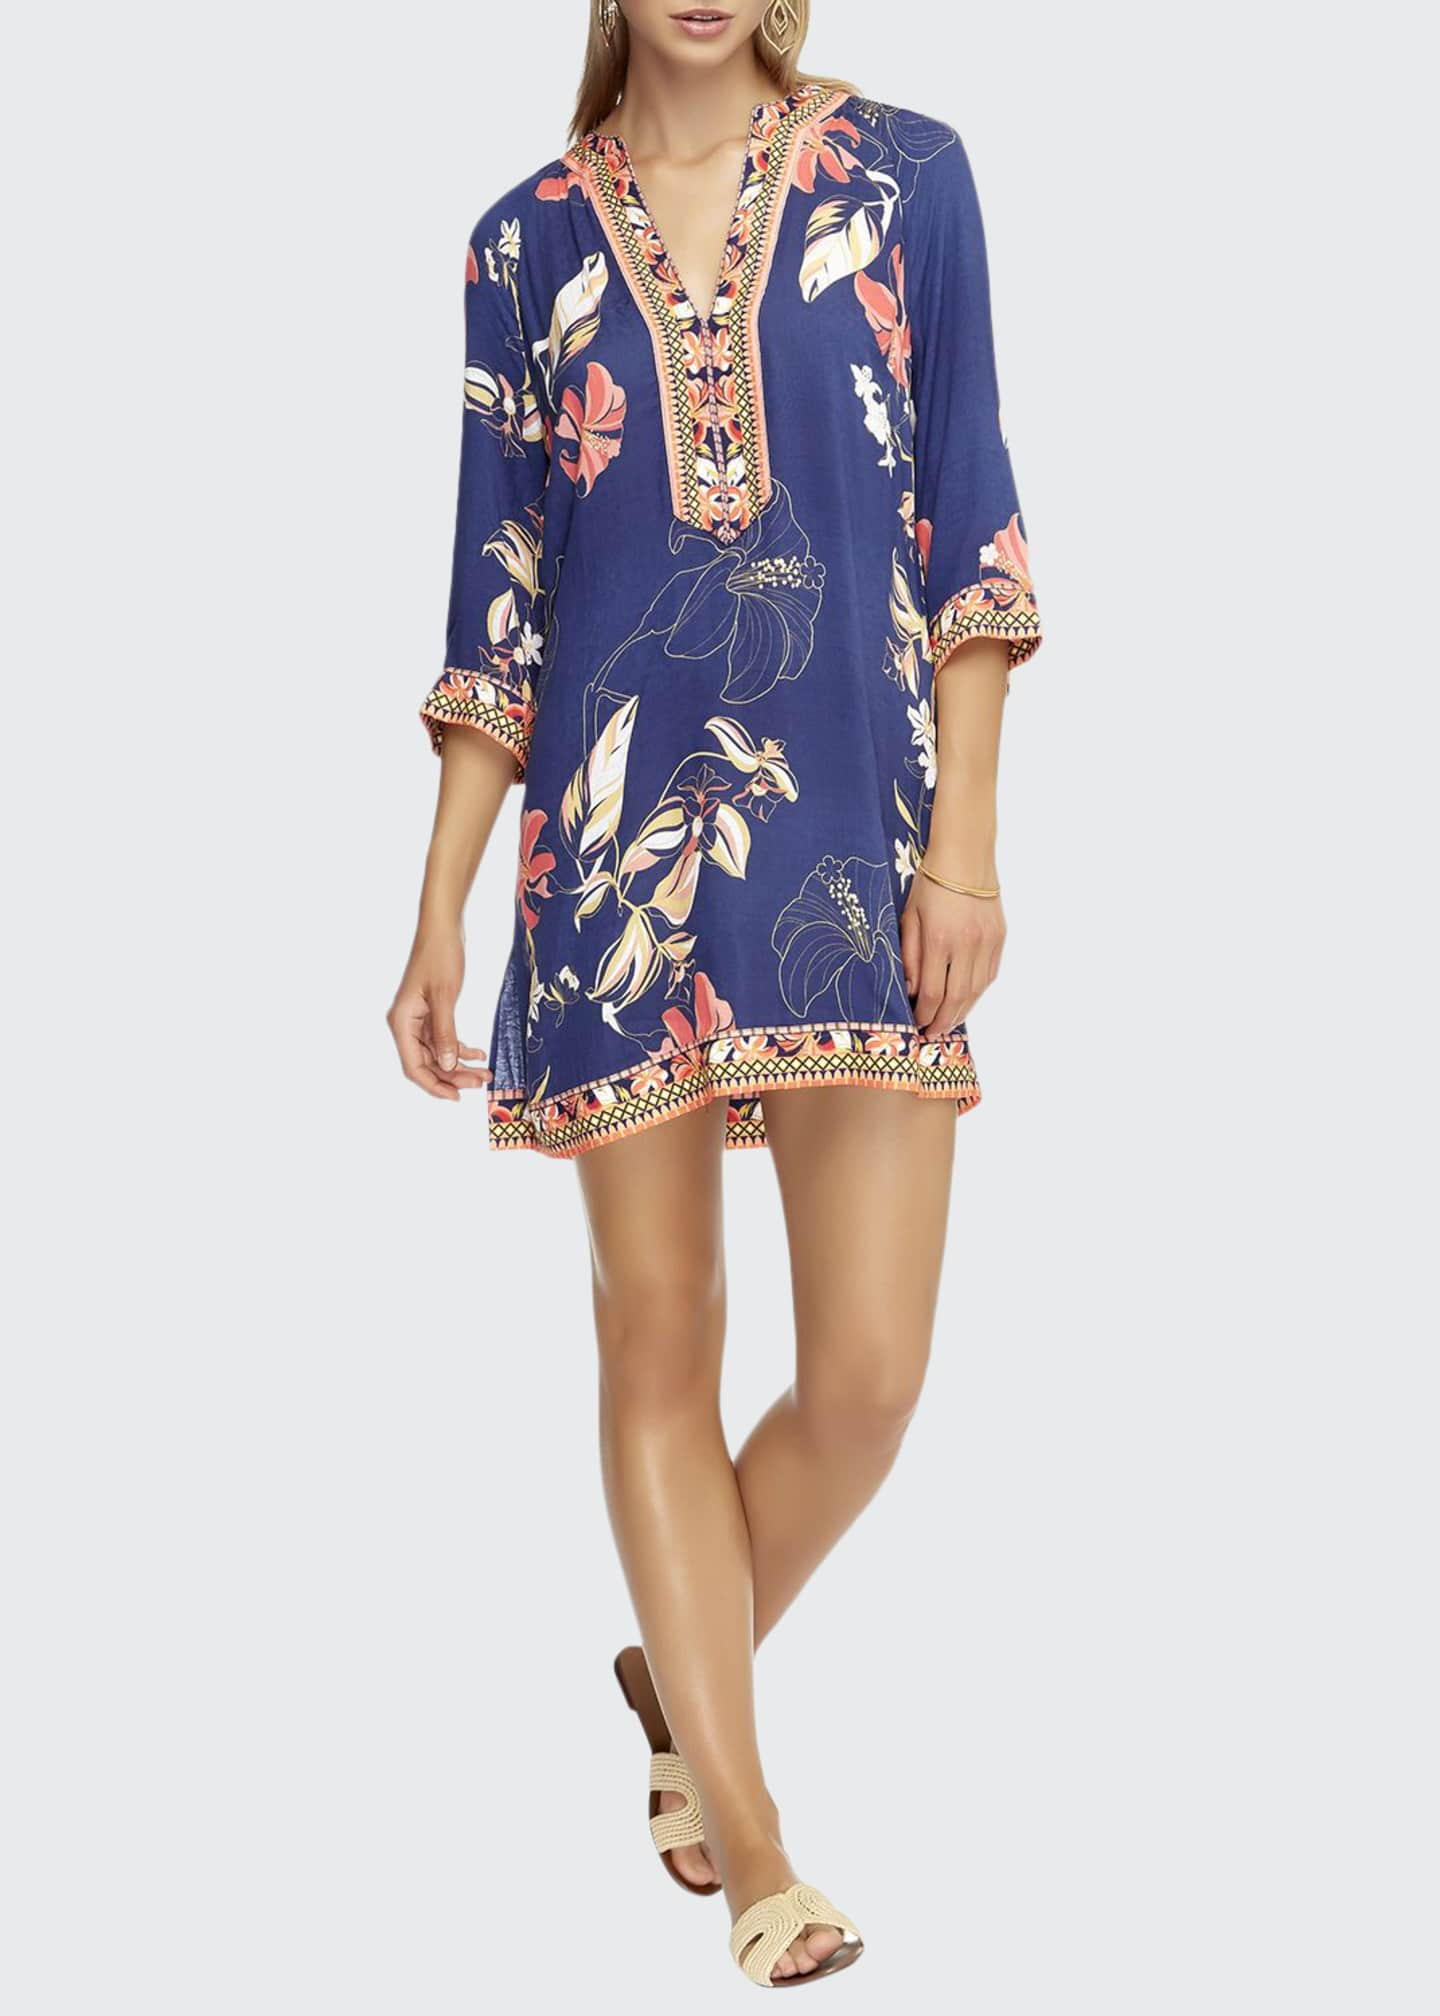 JETS by Jessika Allen Floral-Print 3/4-Sleeve Coverup Kaftan